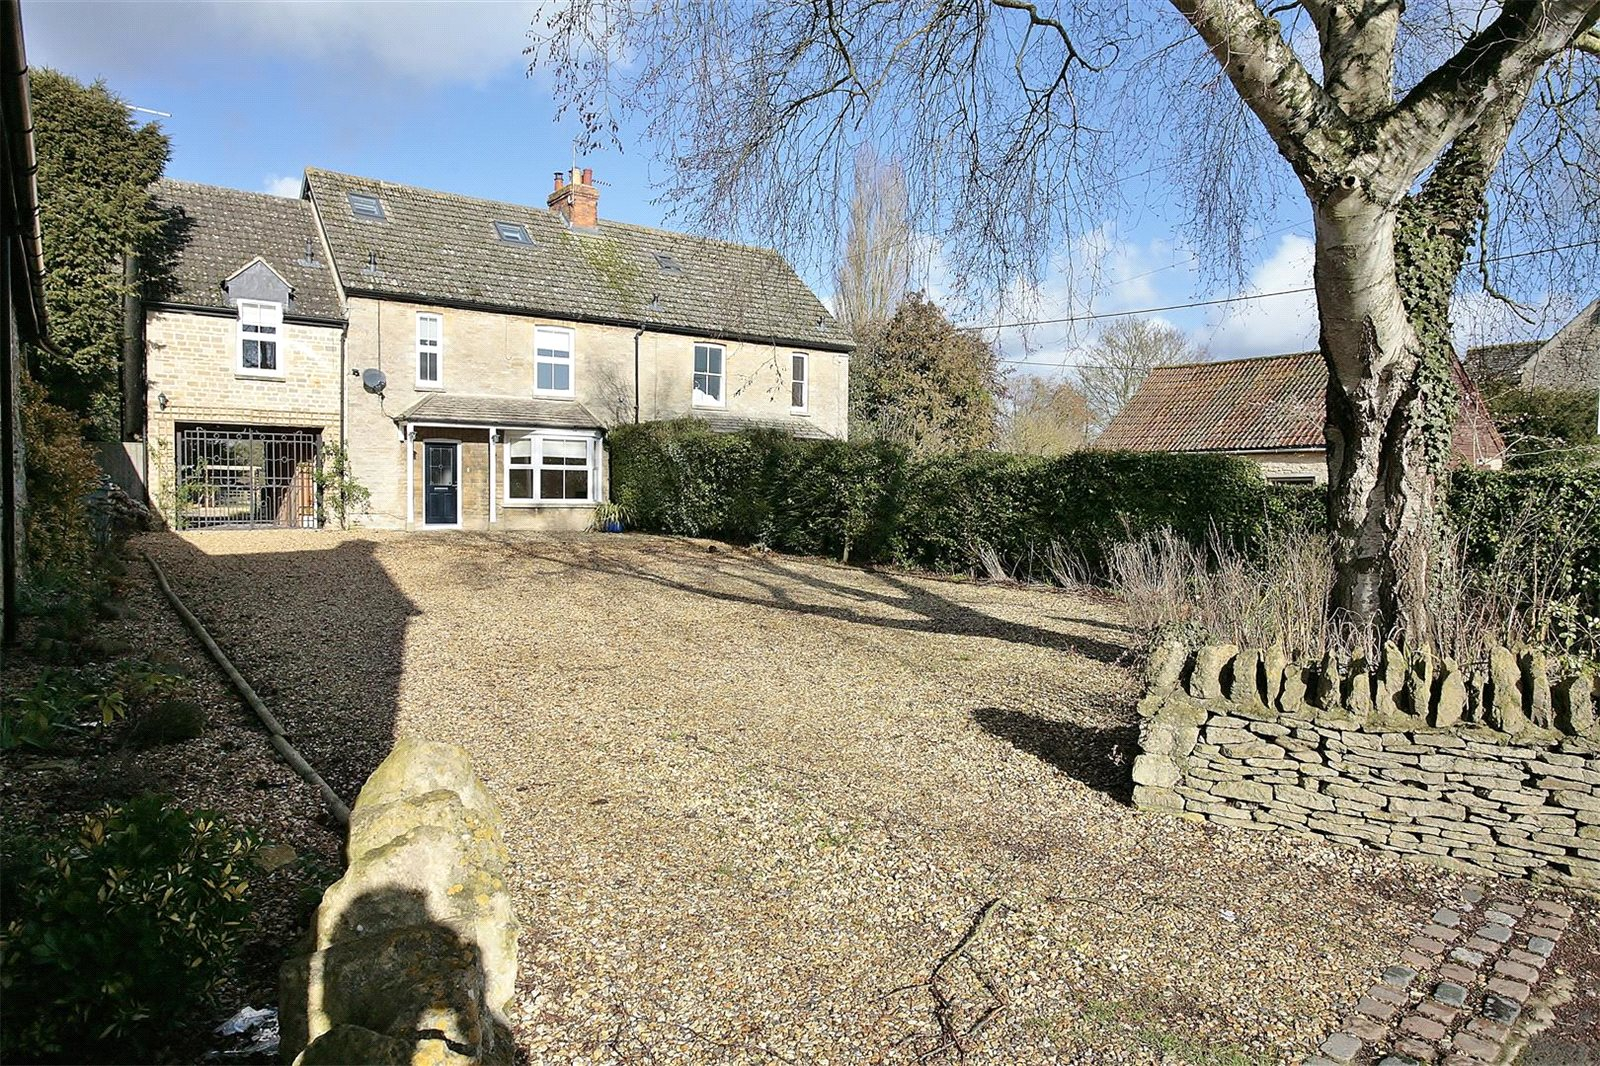 独户住宅 为 销售 在 Bampton Road, Clanfield, Oxfordshire, OX18 Clanfield, 英格兰